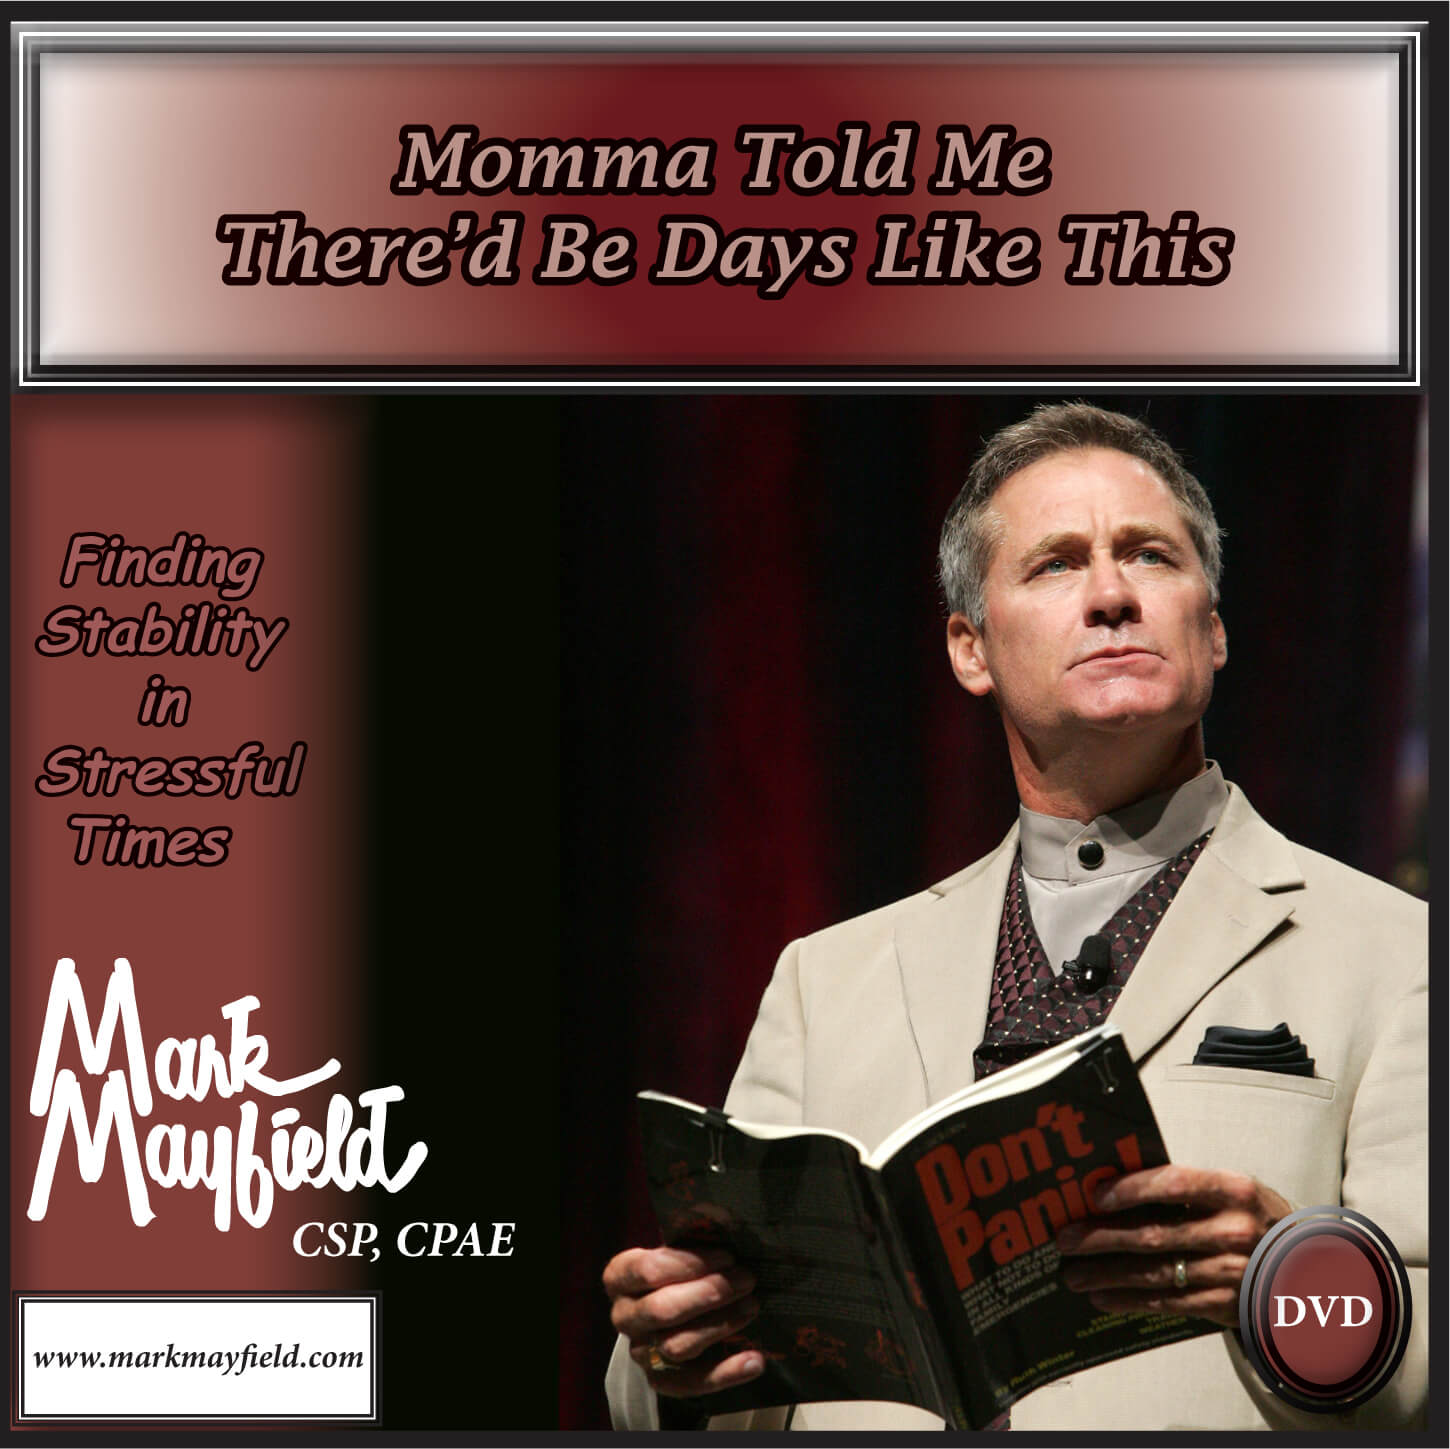 Momma Told Me DVD